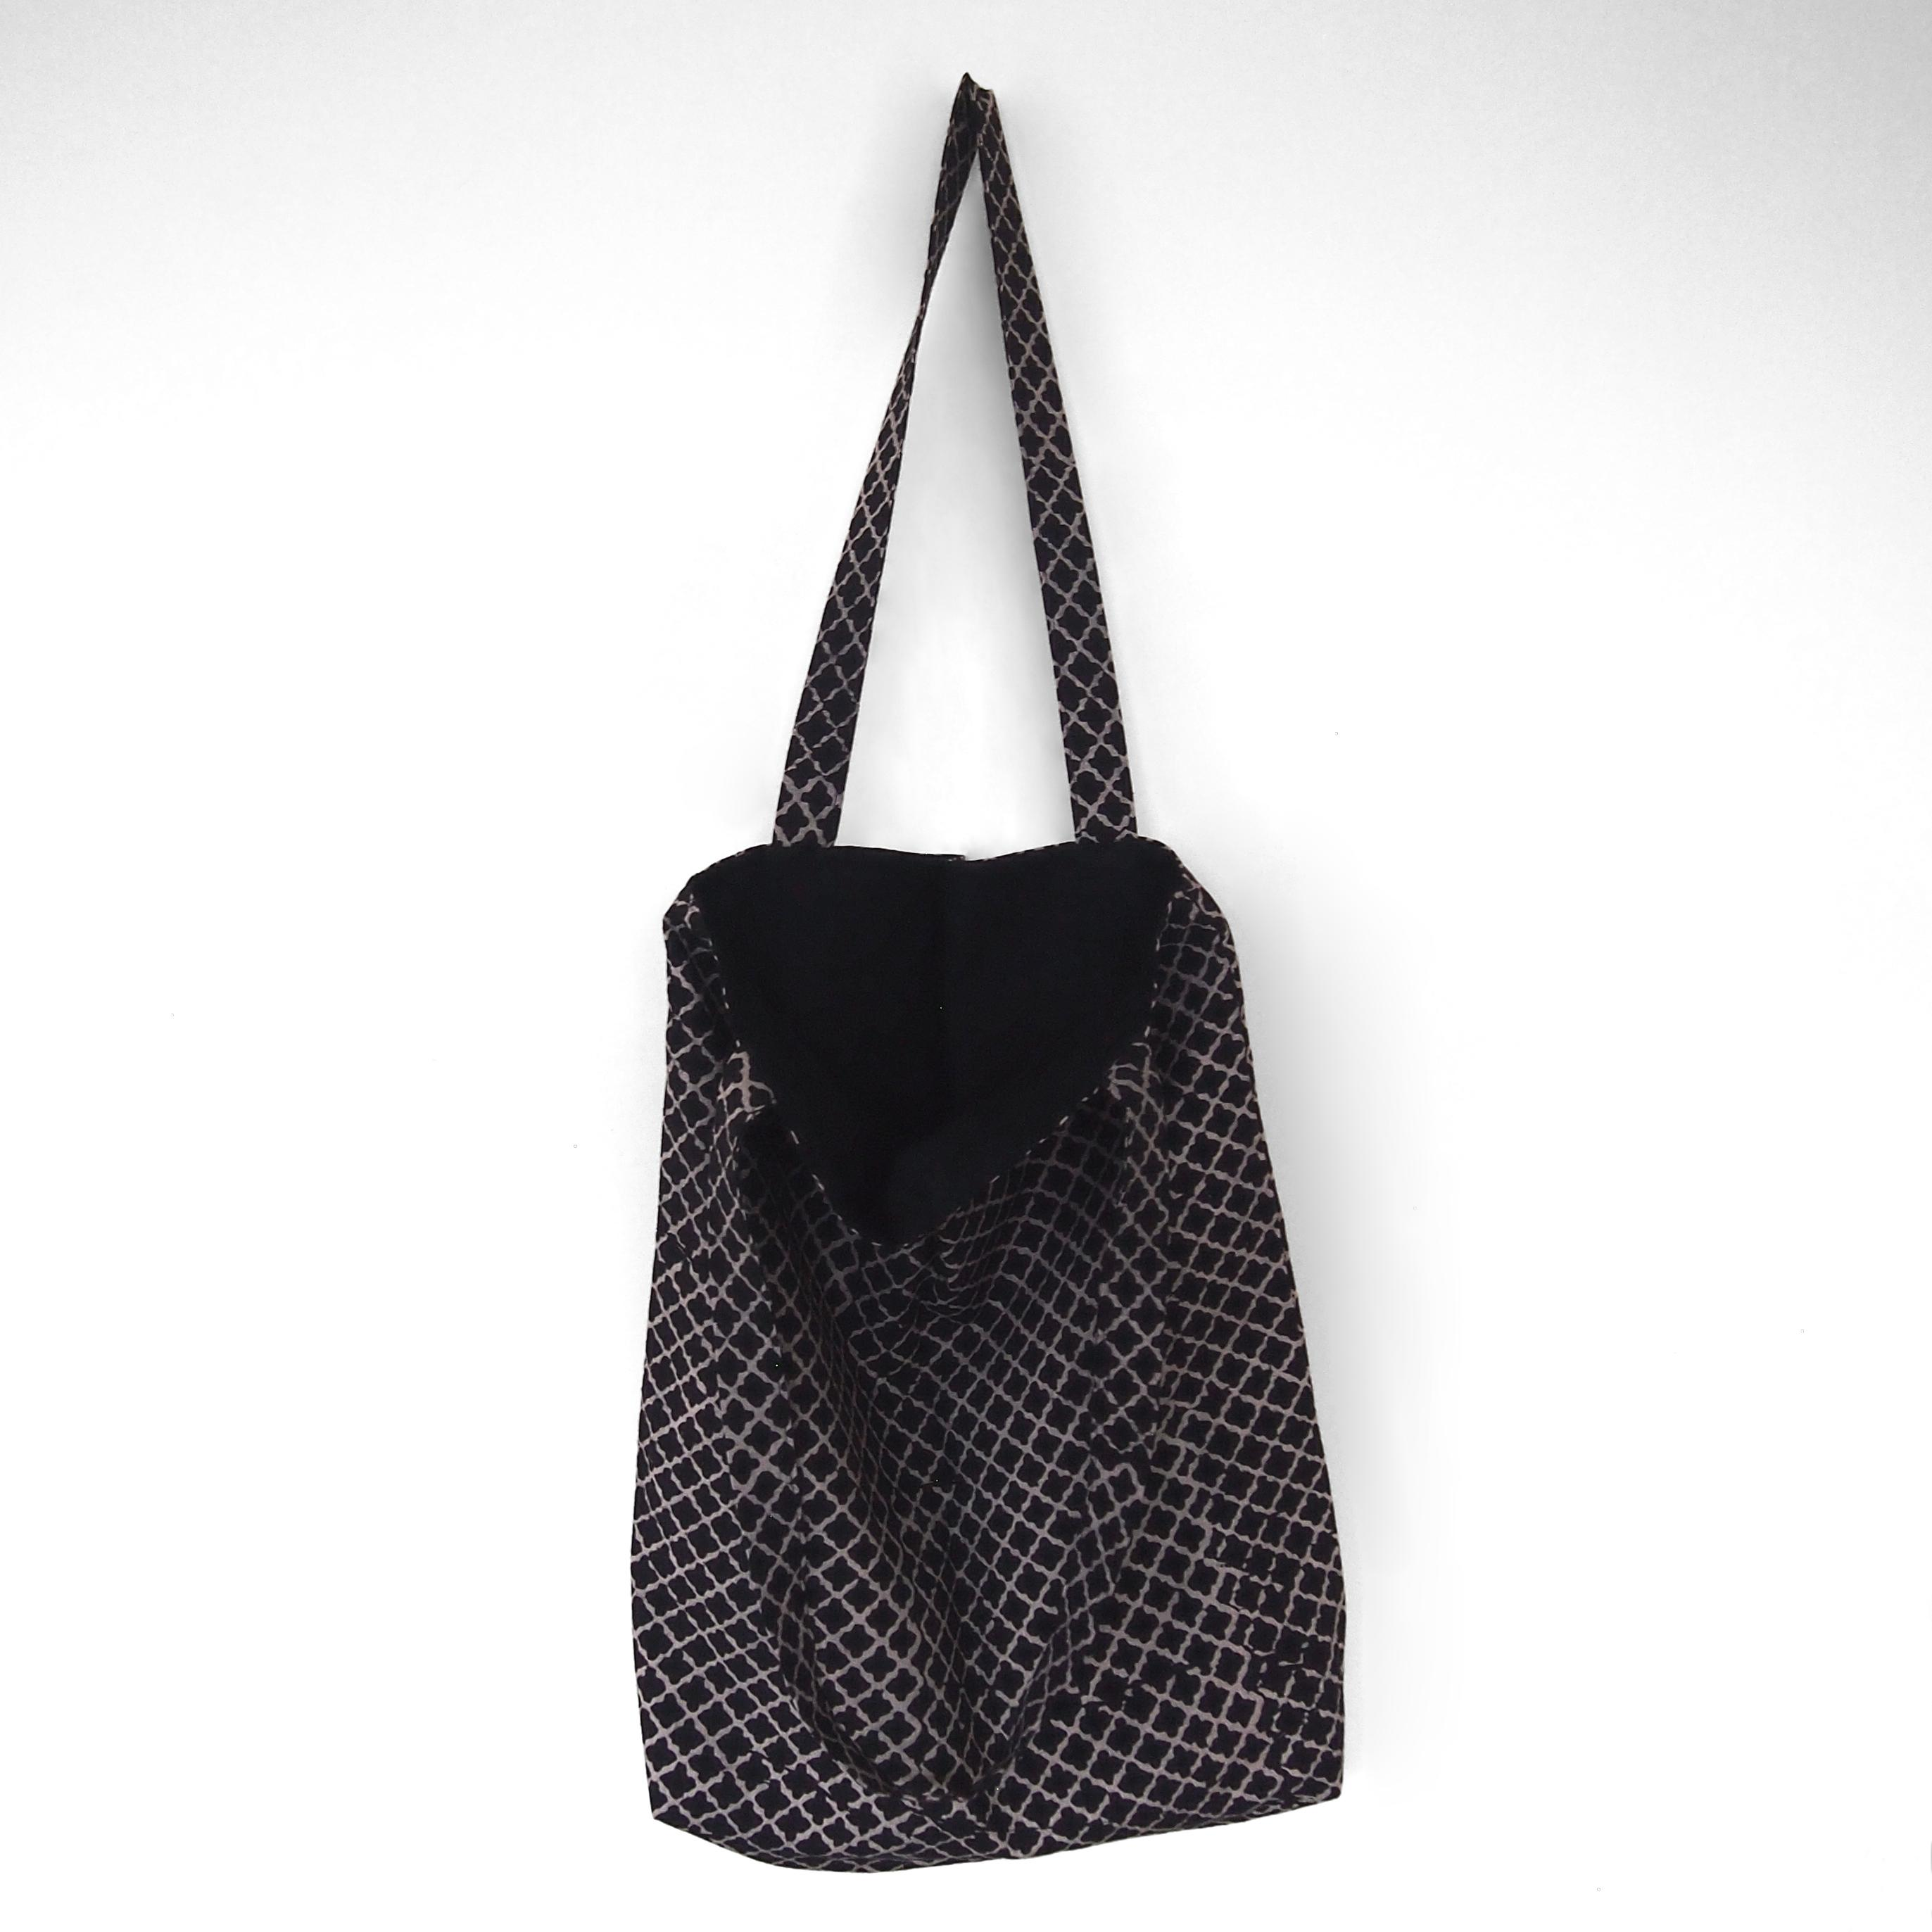 block printed cotton tote bag, natural dye, black, beige clover, lined with black cotton, open